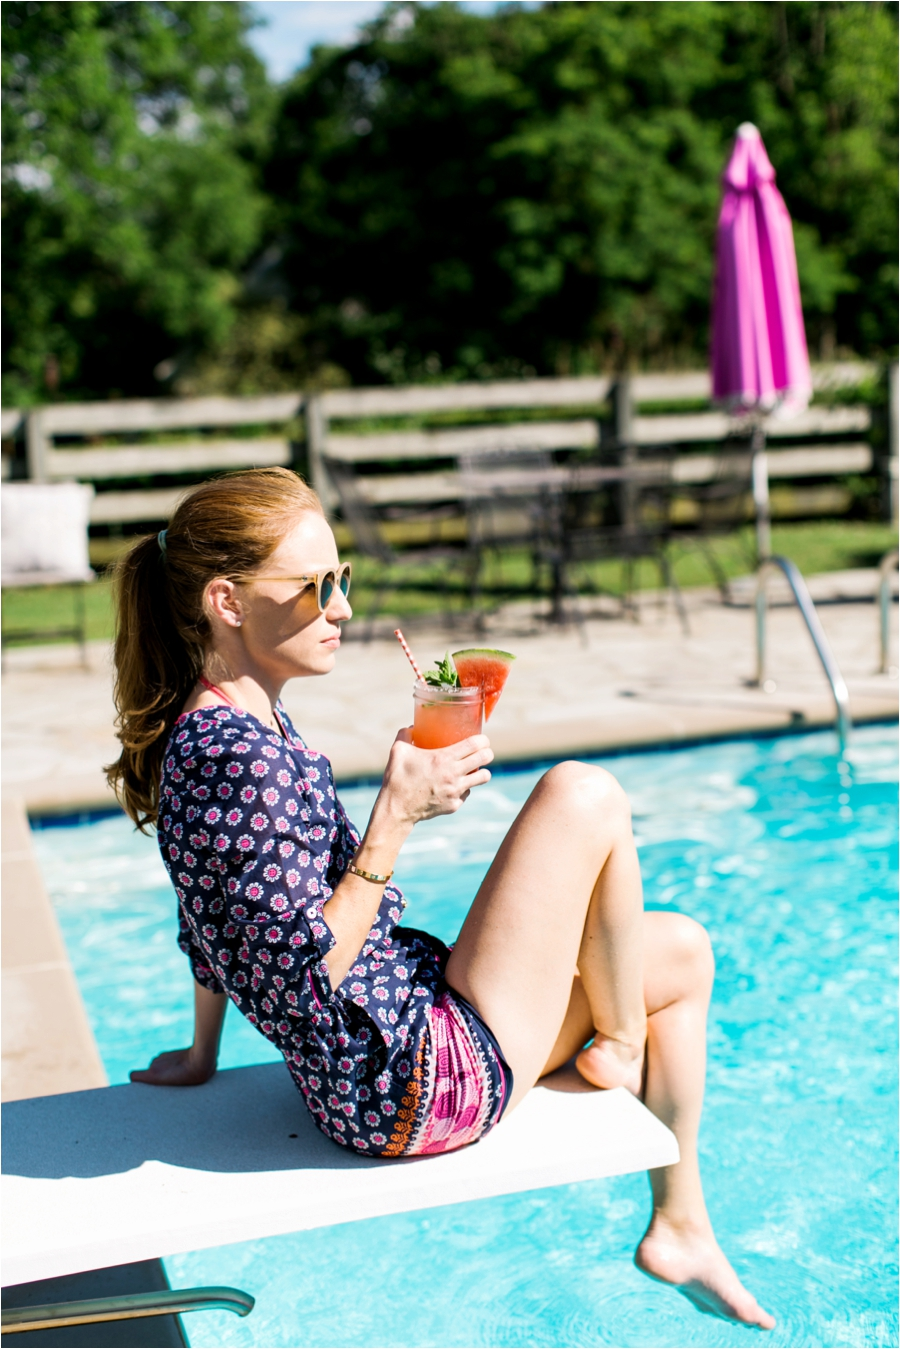 draper james summer pool party editorial by charlottesville photographer, Amy Nicole Photography_0014